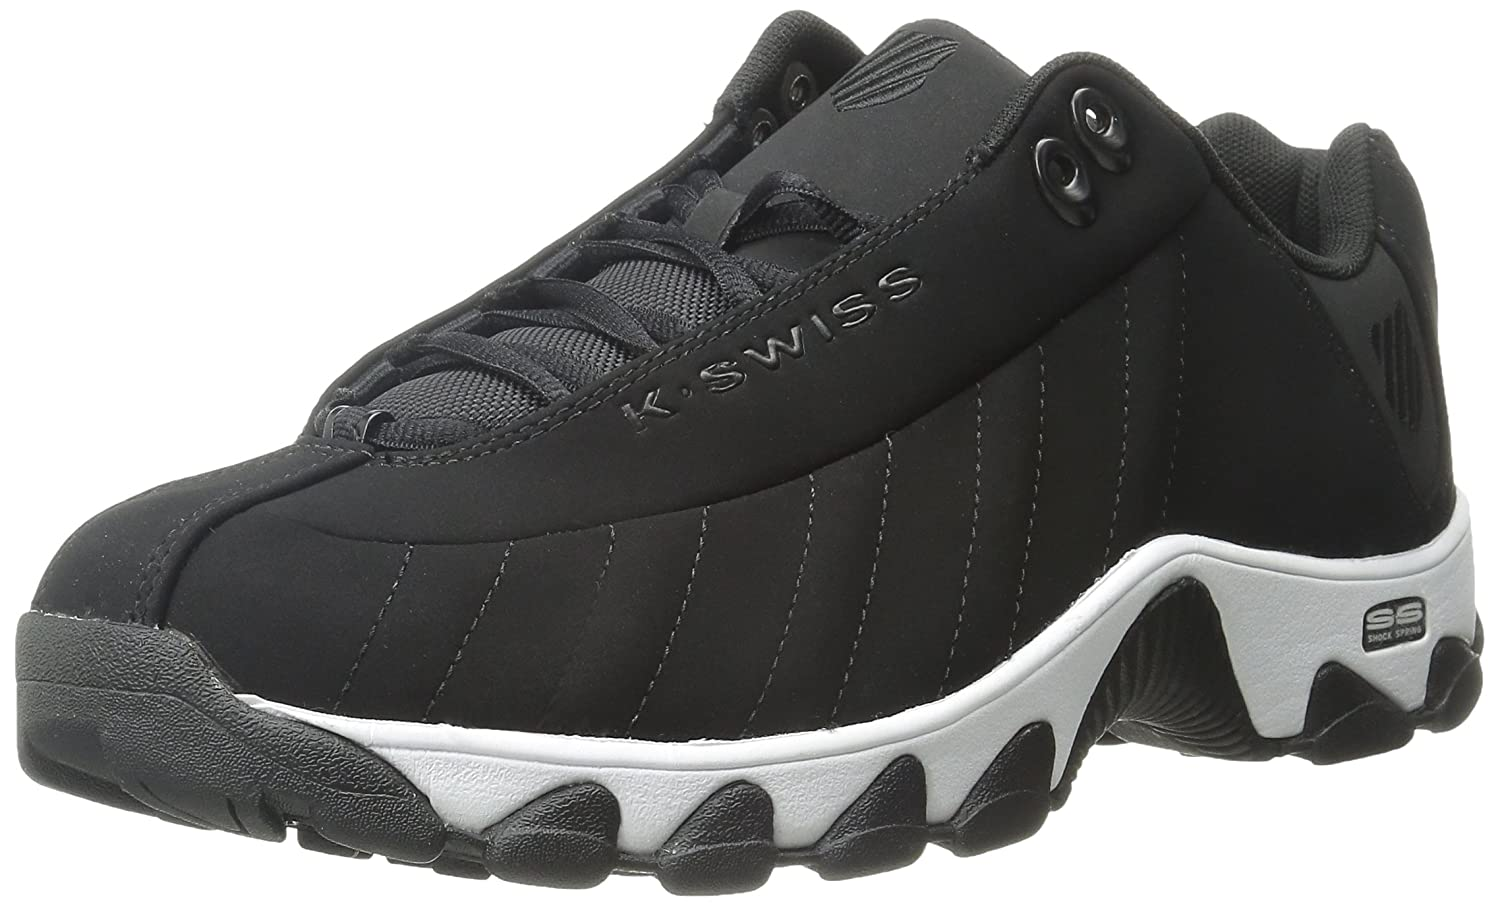 K-Swiss Mens ST329 Fashion Sneakers B011UC54MU 8 D(M) US|ブラックホワイト